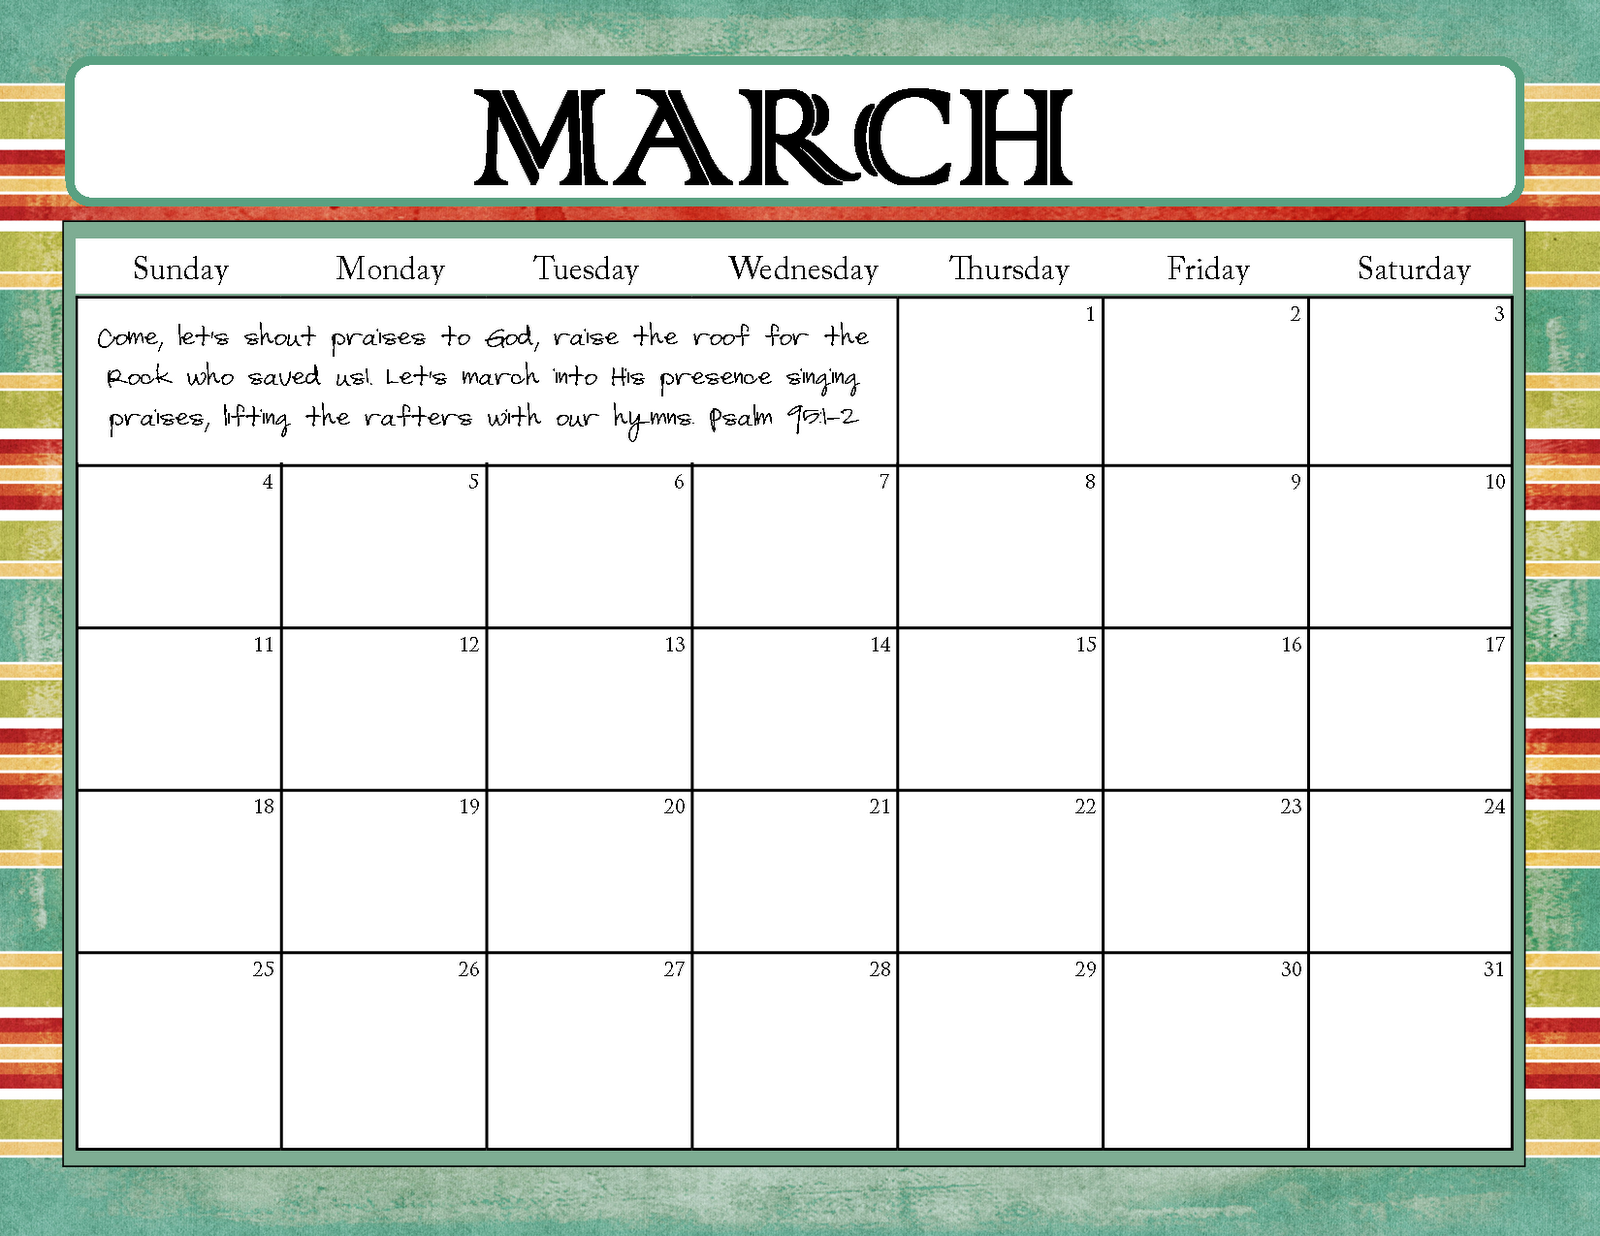 Calendar Of March : Quotes for march calendars quotesgram